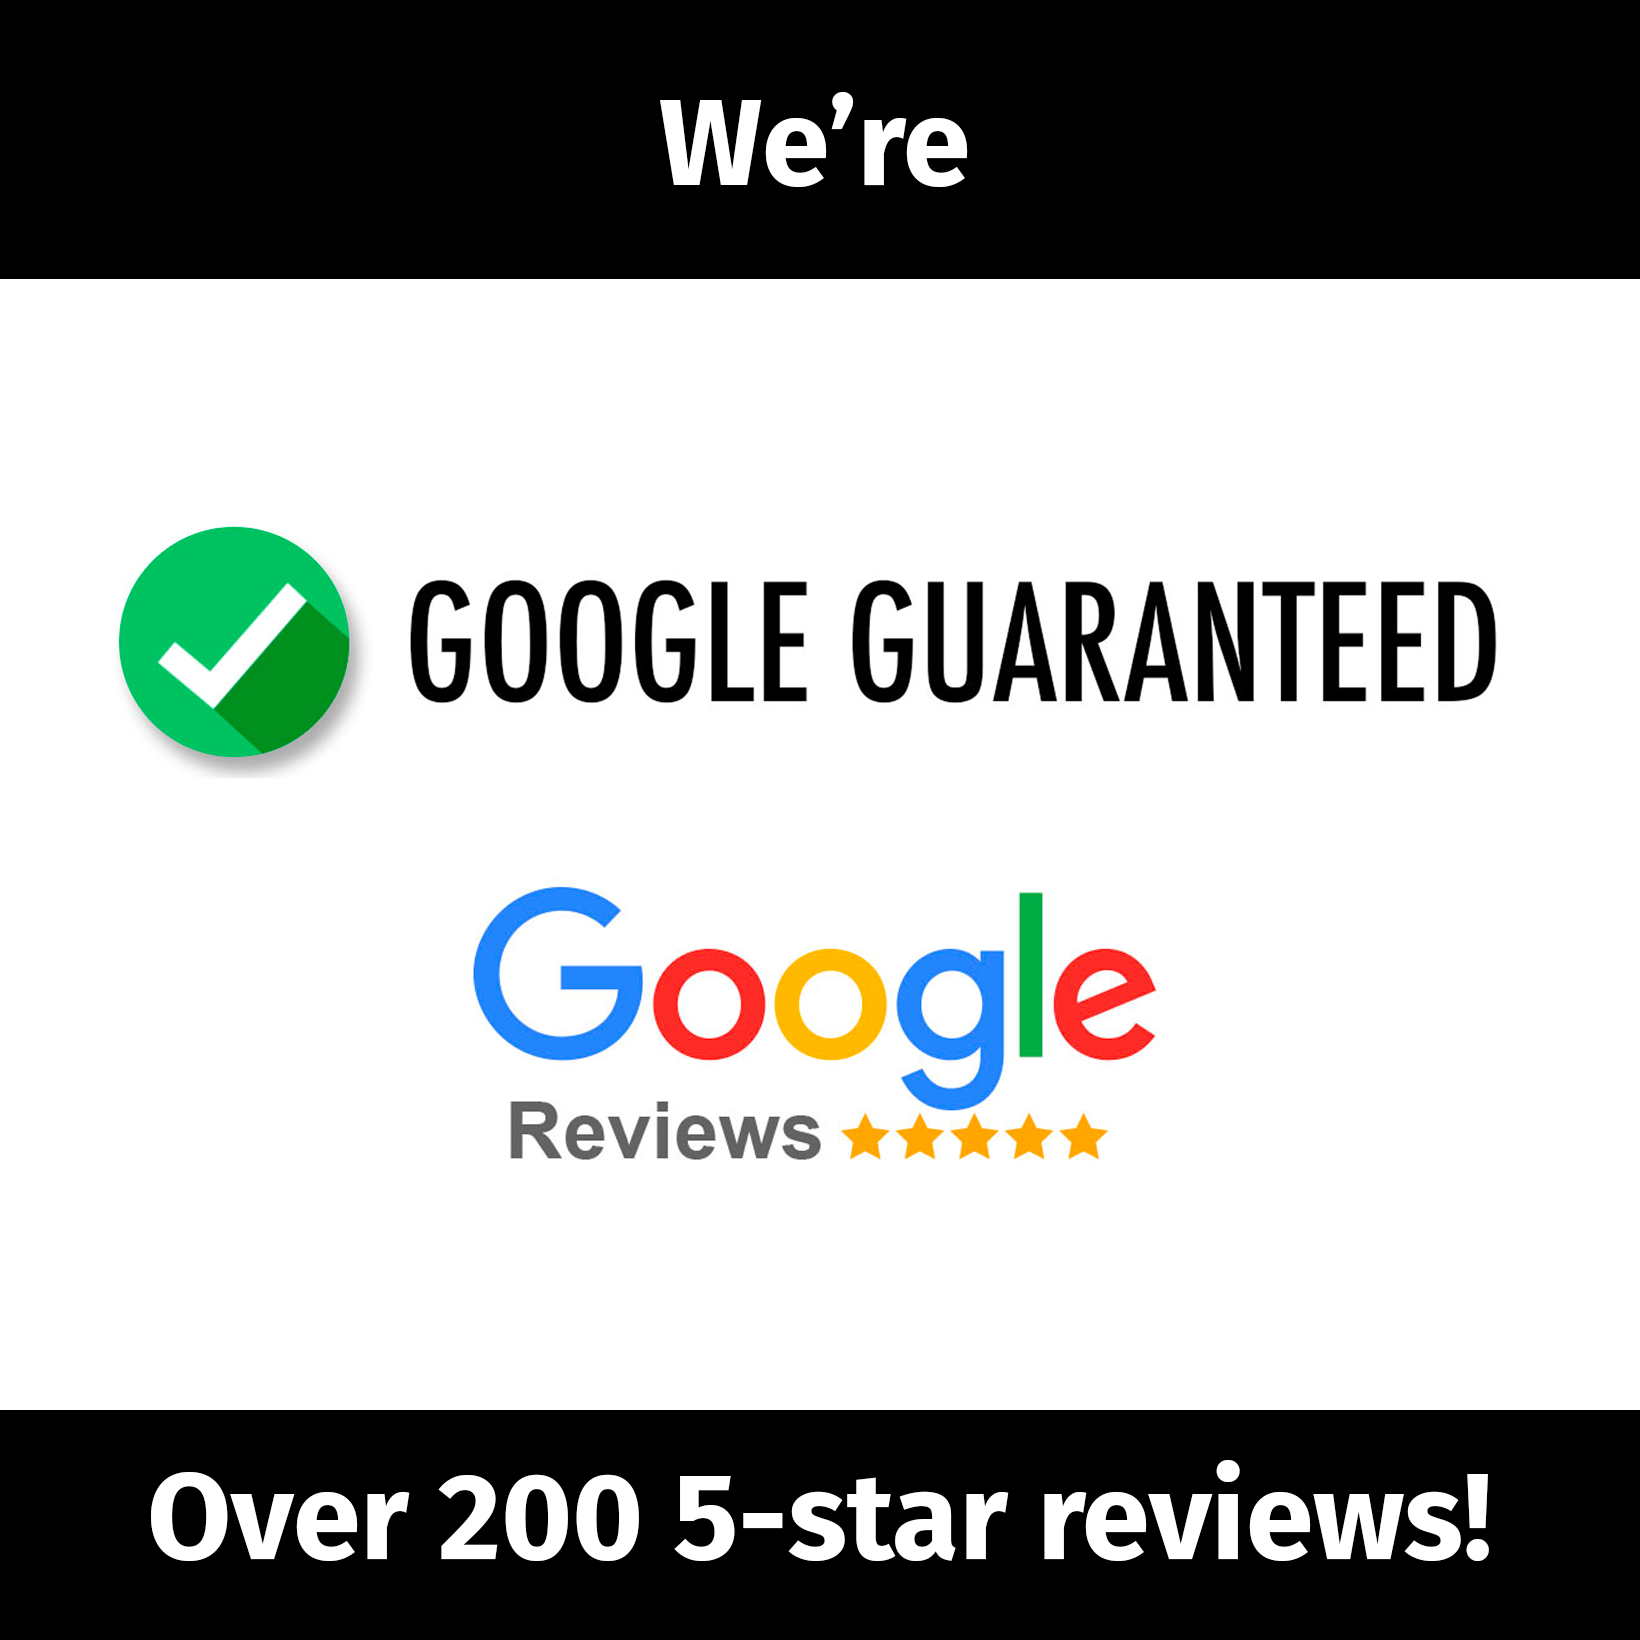 Google Guaranteed Contractor with over 200 Google 5-star reviews